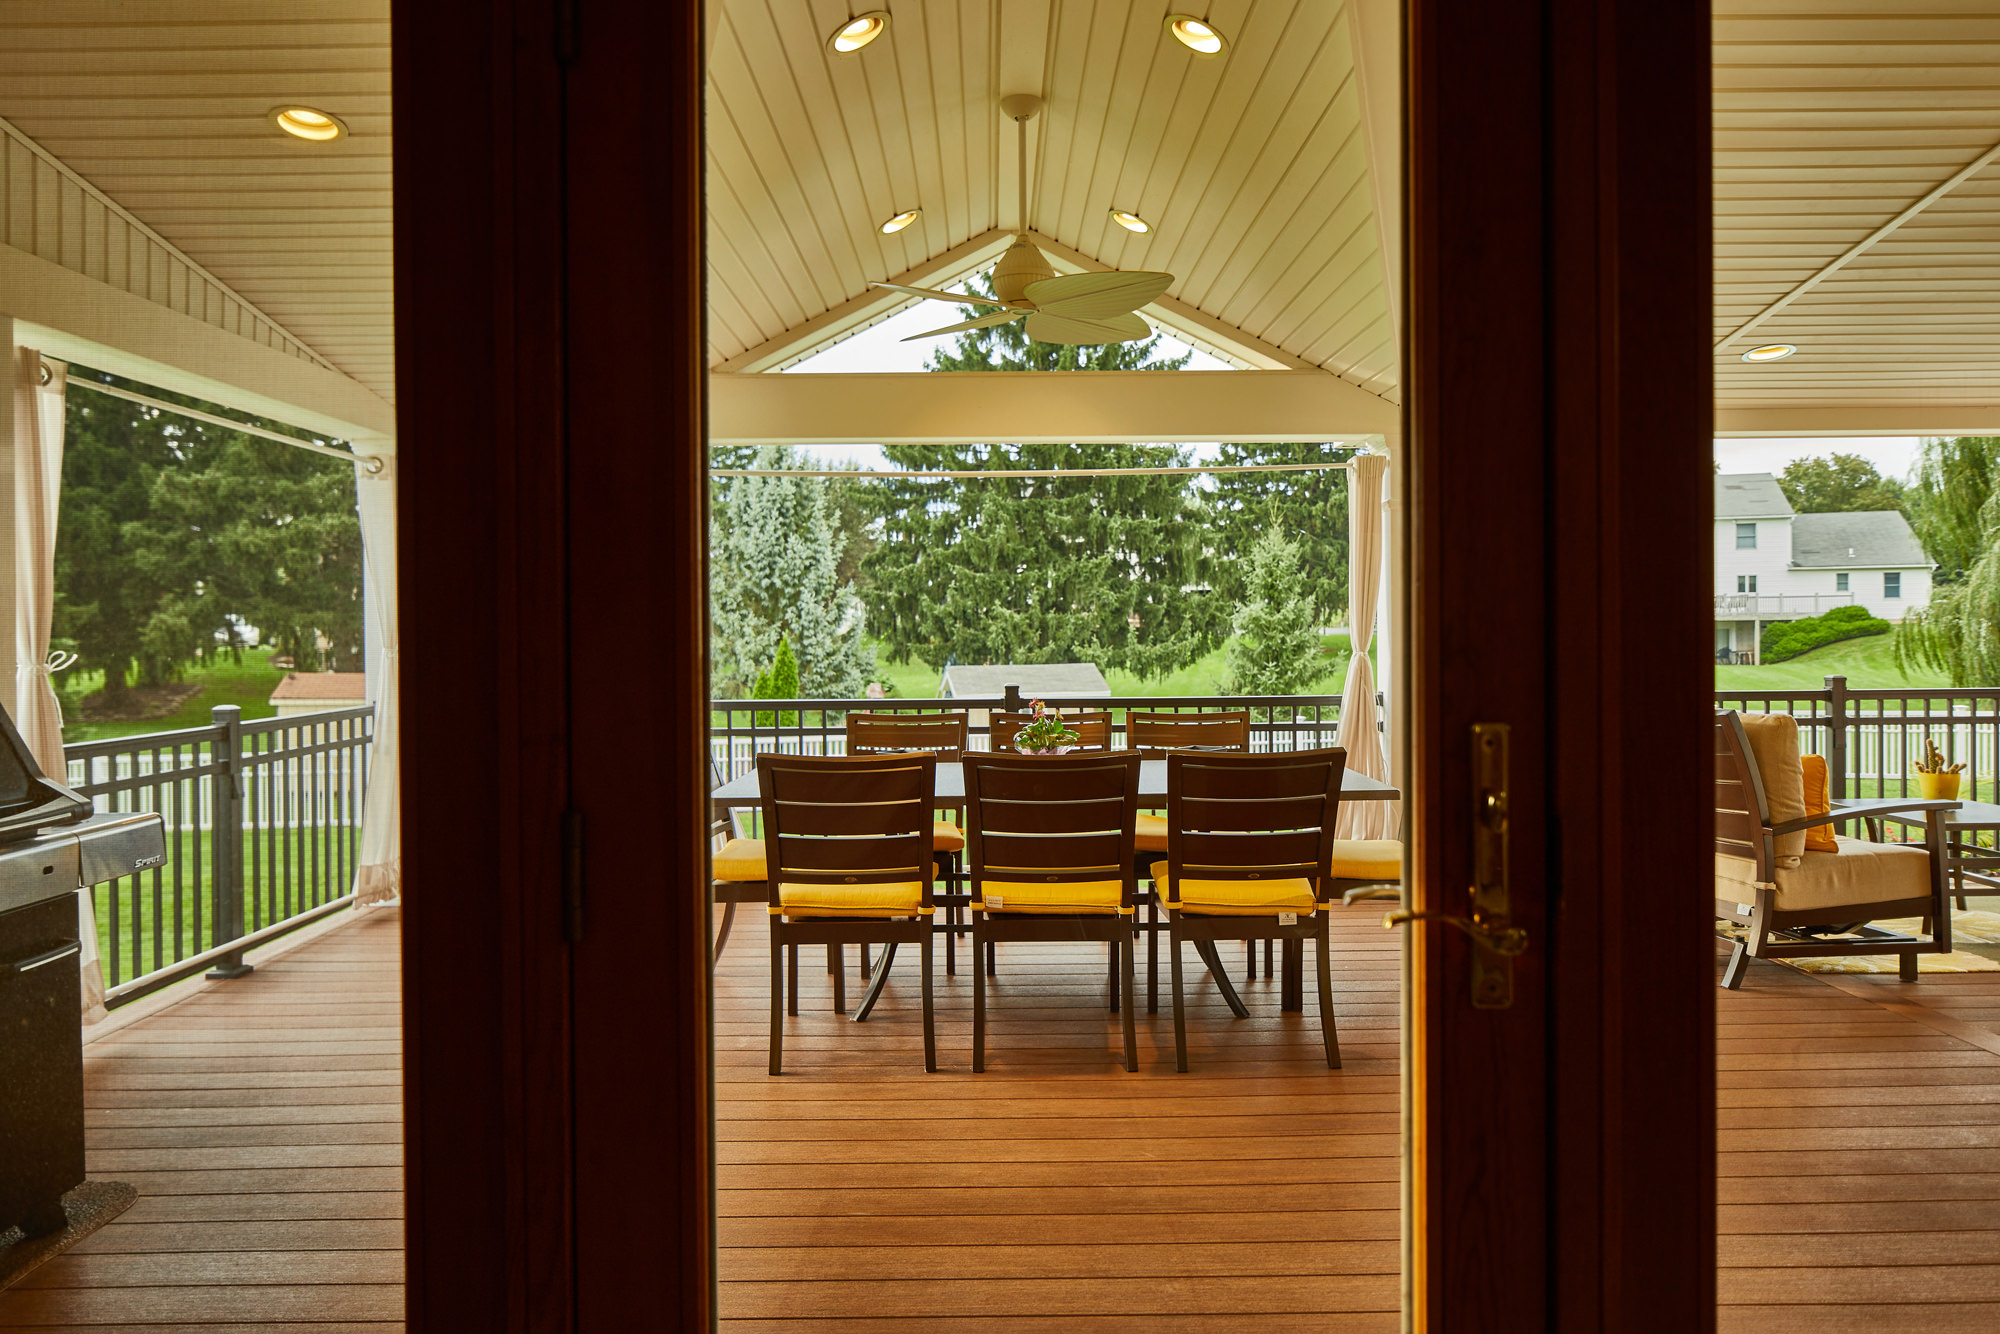 Open the living room patio doors to the flush deck space that has all 3 destination zones: cooking, dining and lounging! This seamless transition creates an expanded living space that is beautiful and also functional.